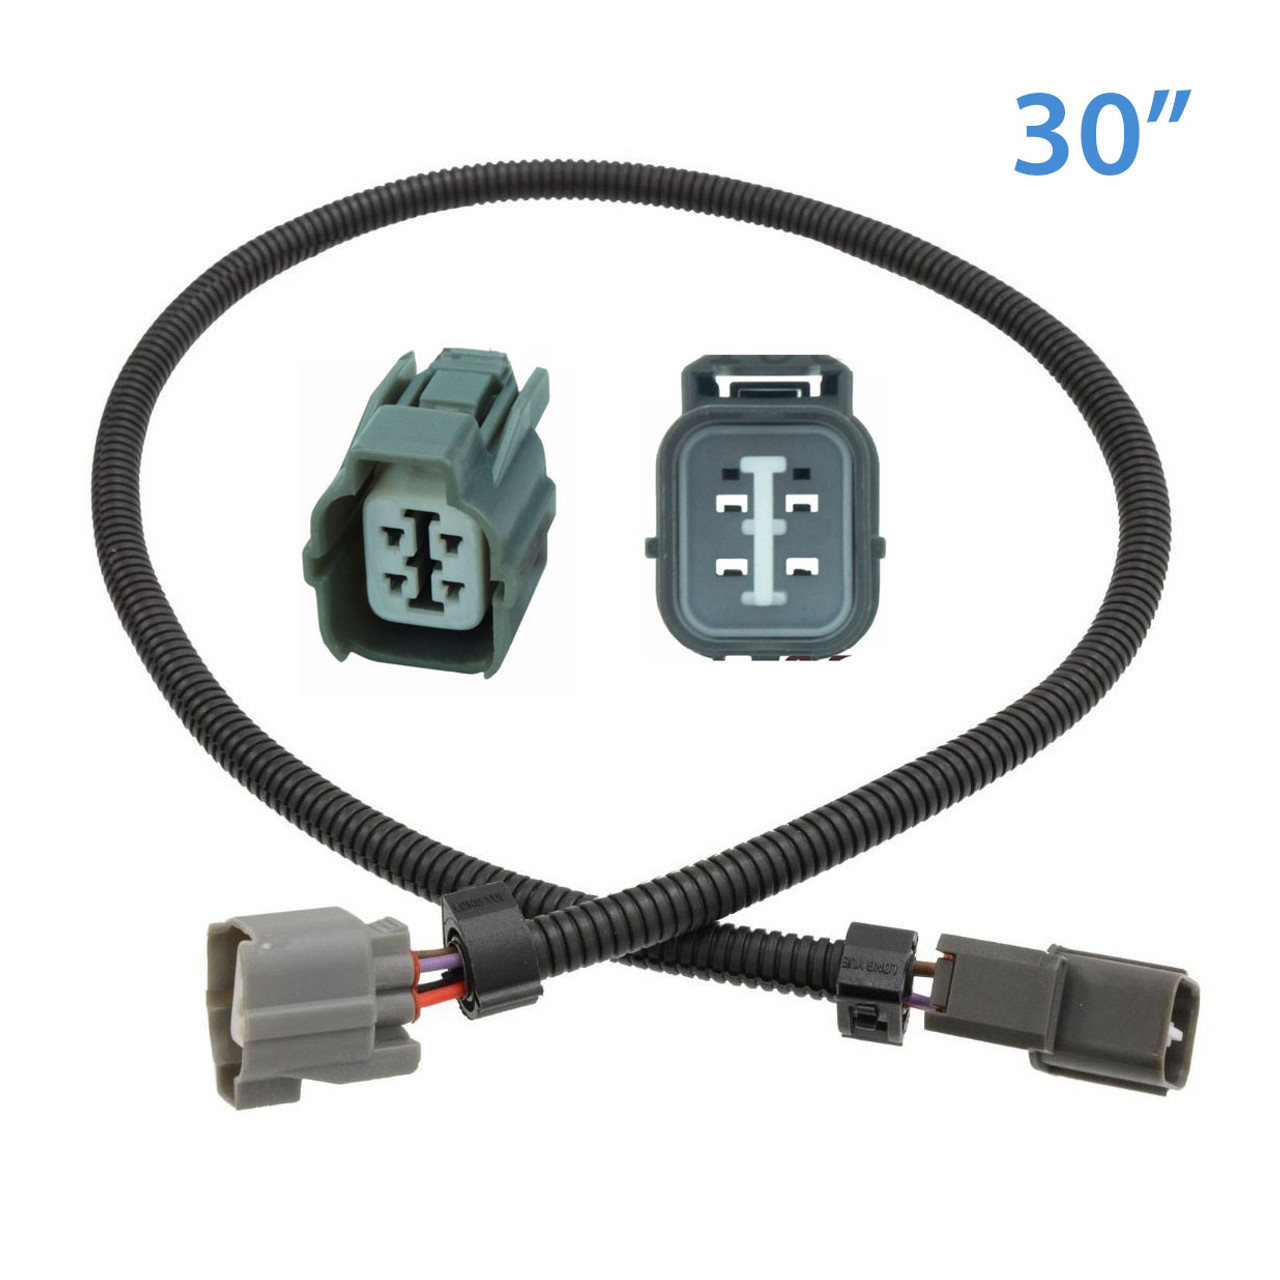 4 wire o2 sensor extension cable honda civic integra 30 obd gt wiring harness gt toyota tail light connector harness extension [ 1236 x 1236 Pixel ]